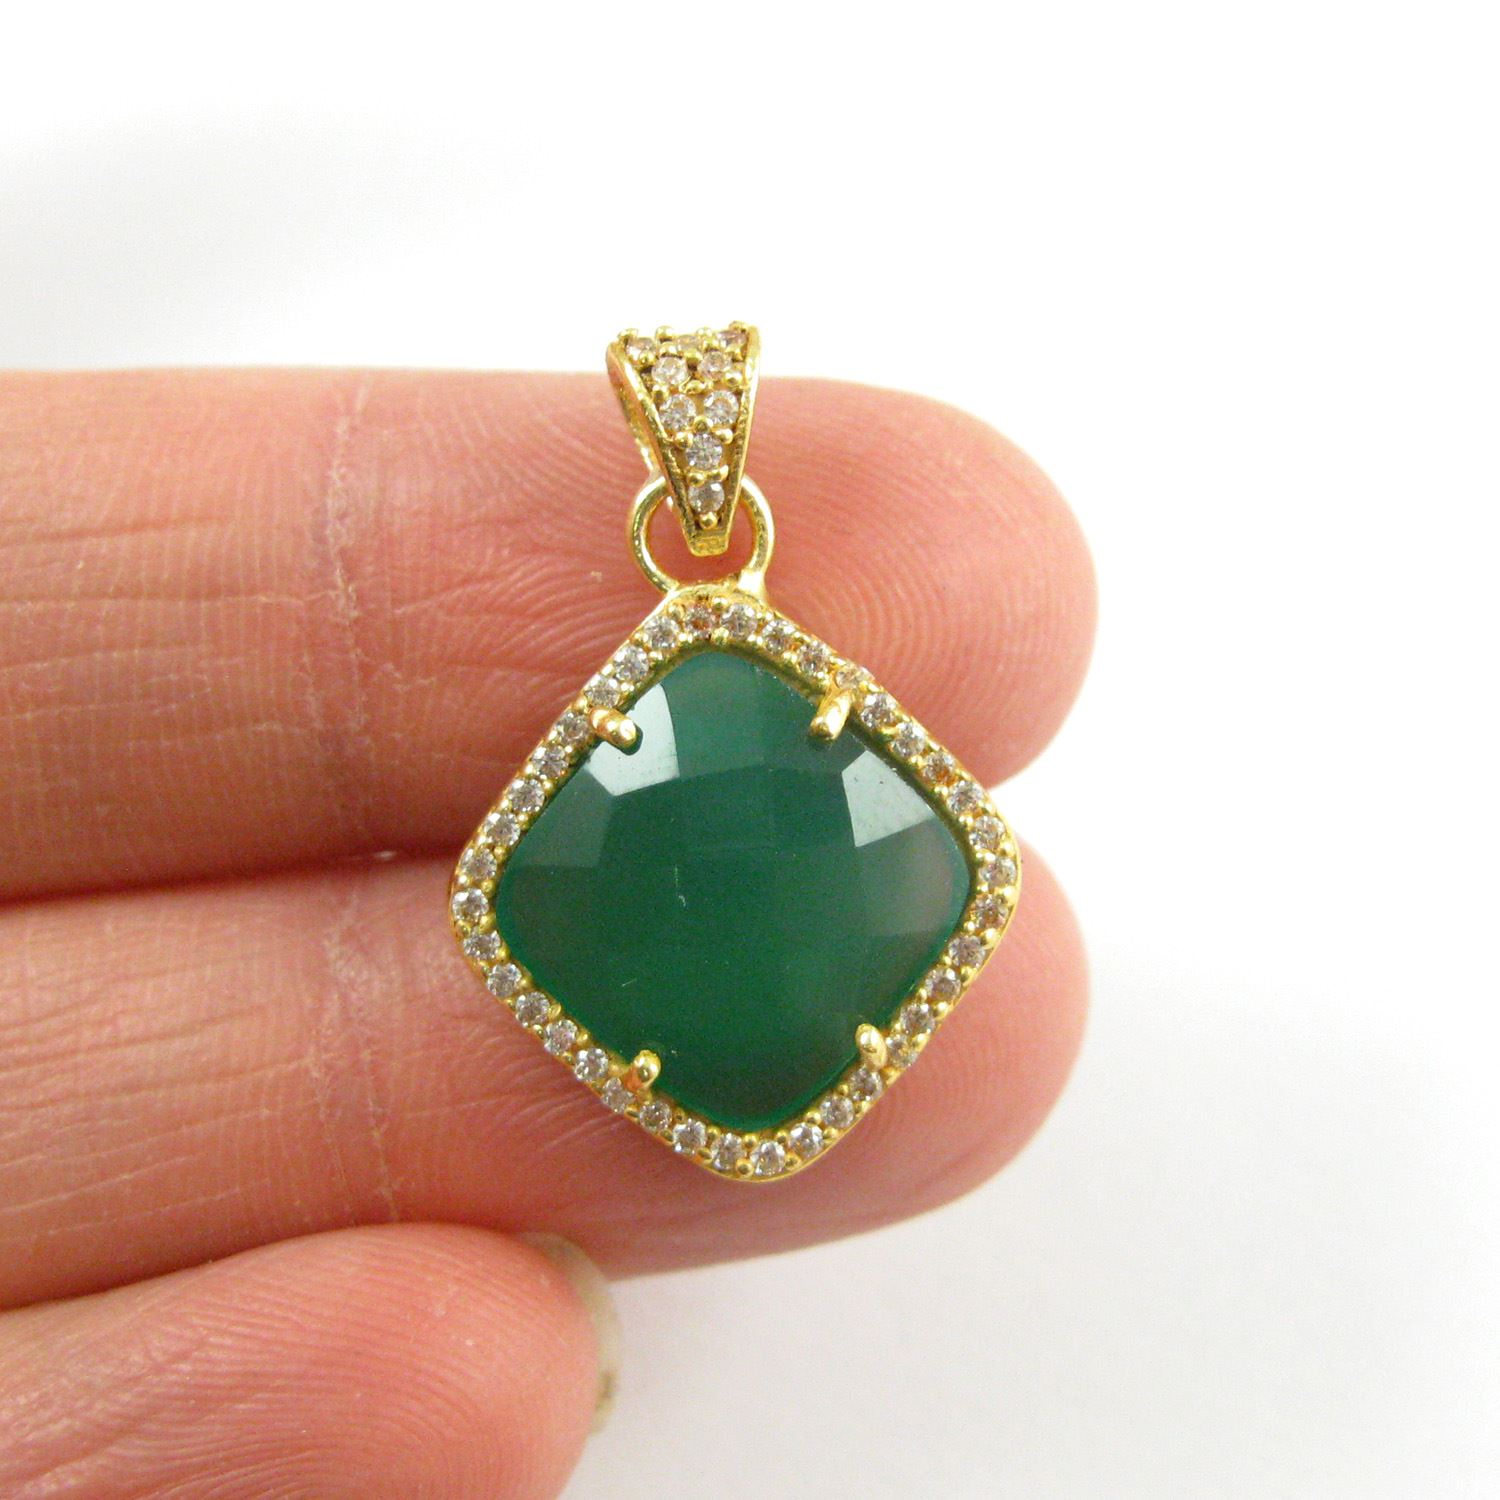 Gold plated Sterling Silver Pave Bezel Gemstone Pendant - Cubic Zirconia Pave Setting -  Diamond Shape Faceted Stone- Green Onyx - 17mm